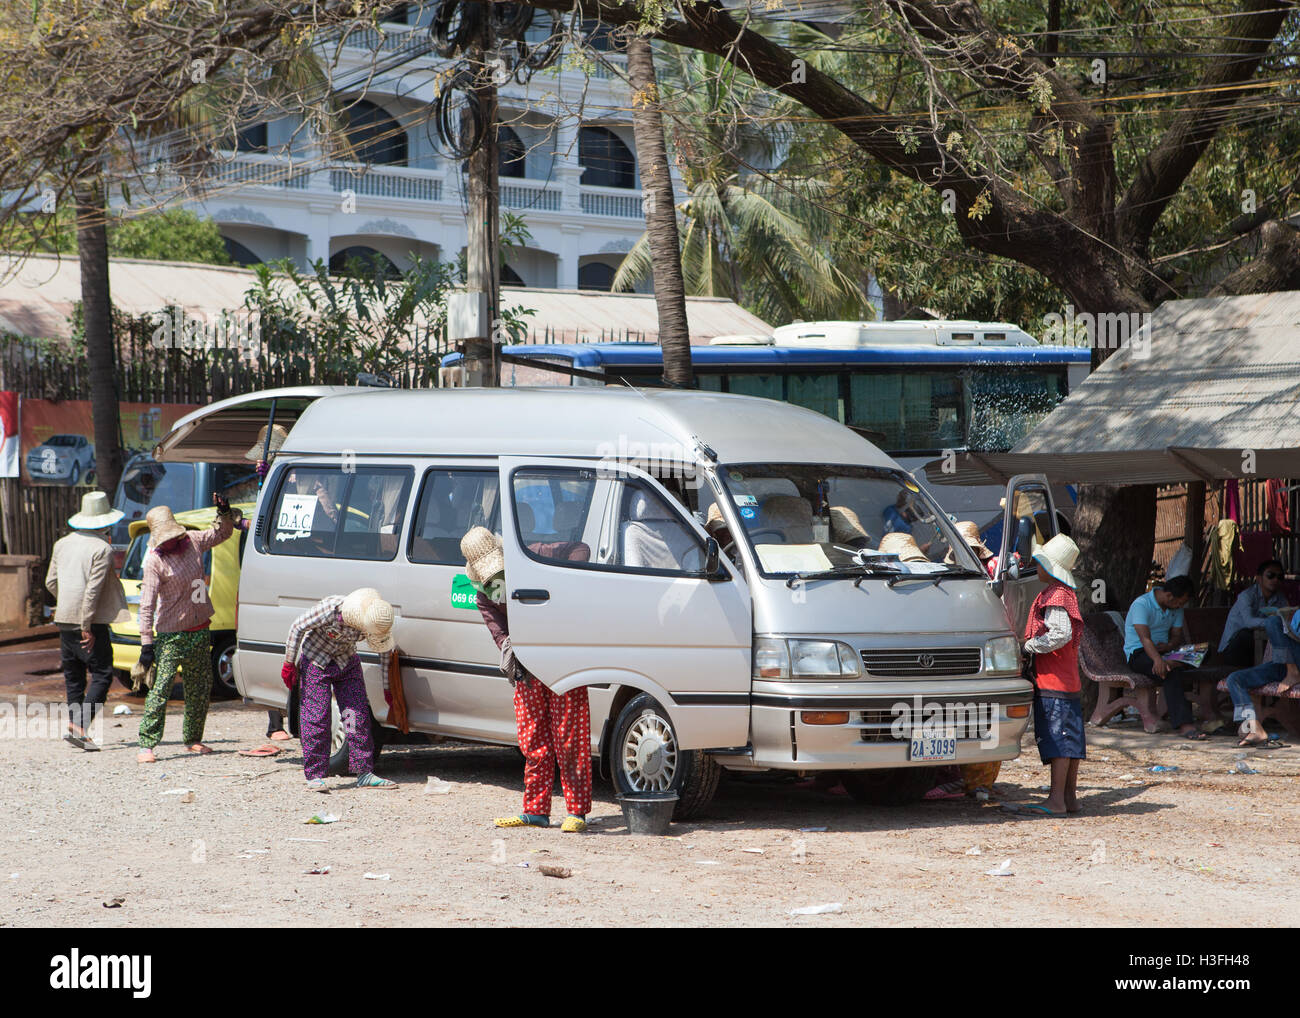 Women cleaning a minibus in Siem Reap,Cambodia. - Stock Image